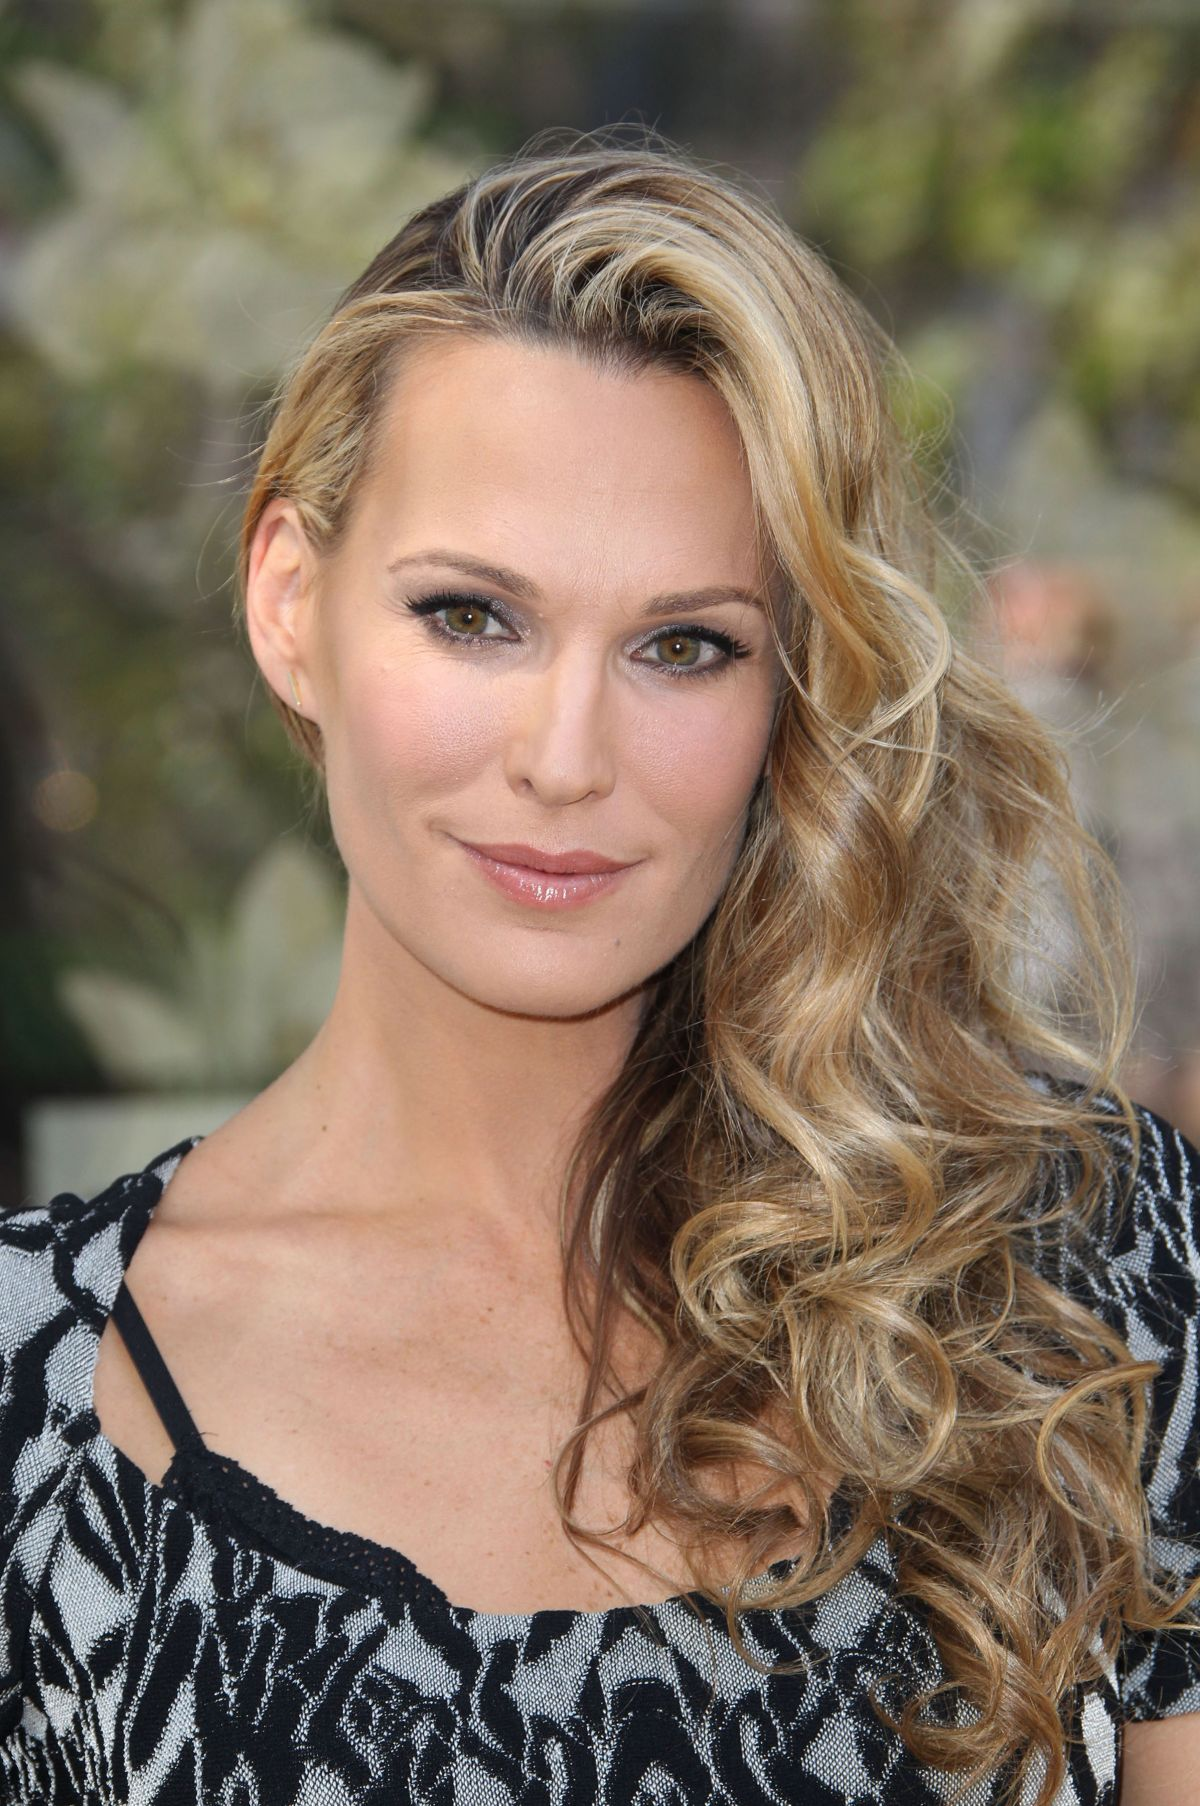 Celebrity Molly Sims nudes (39 pics), Twitter